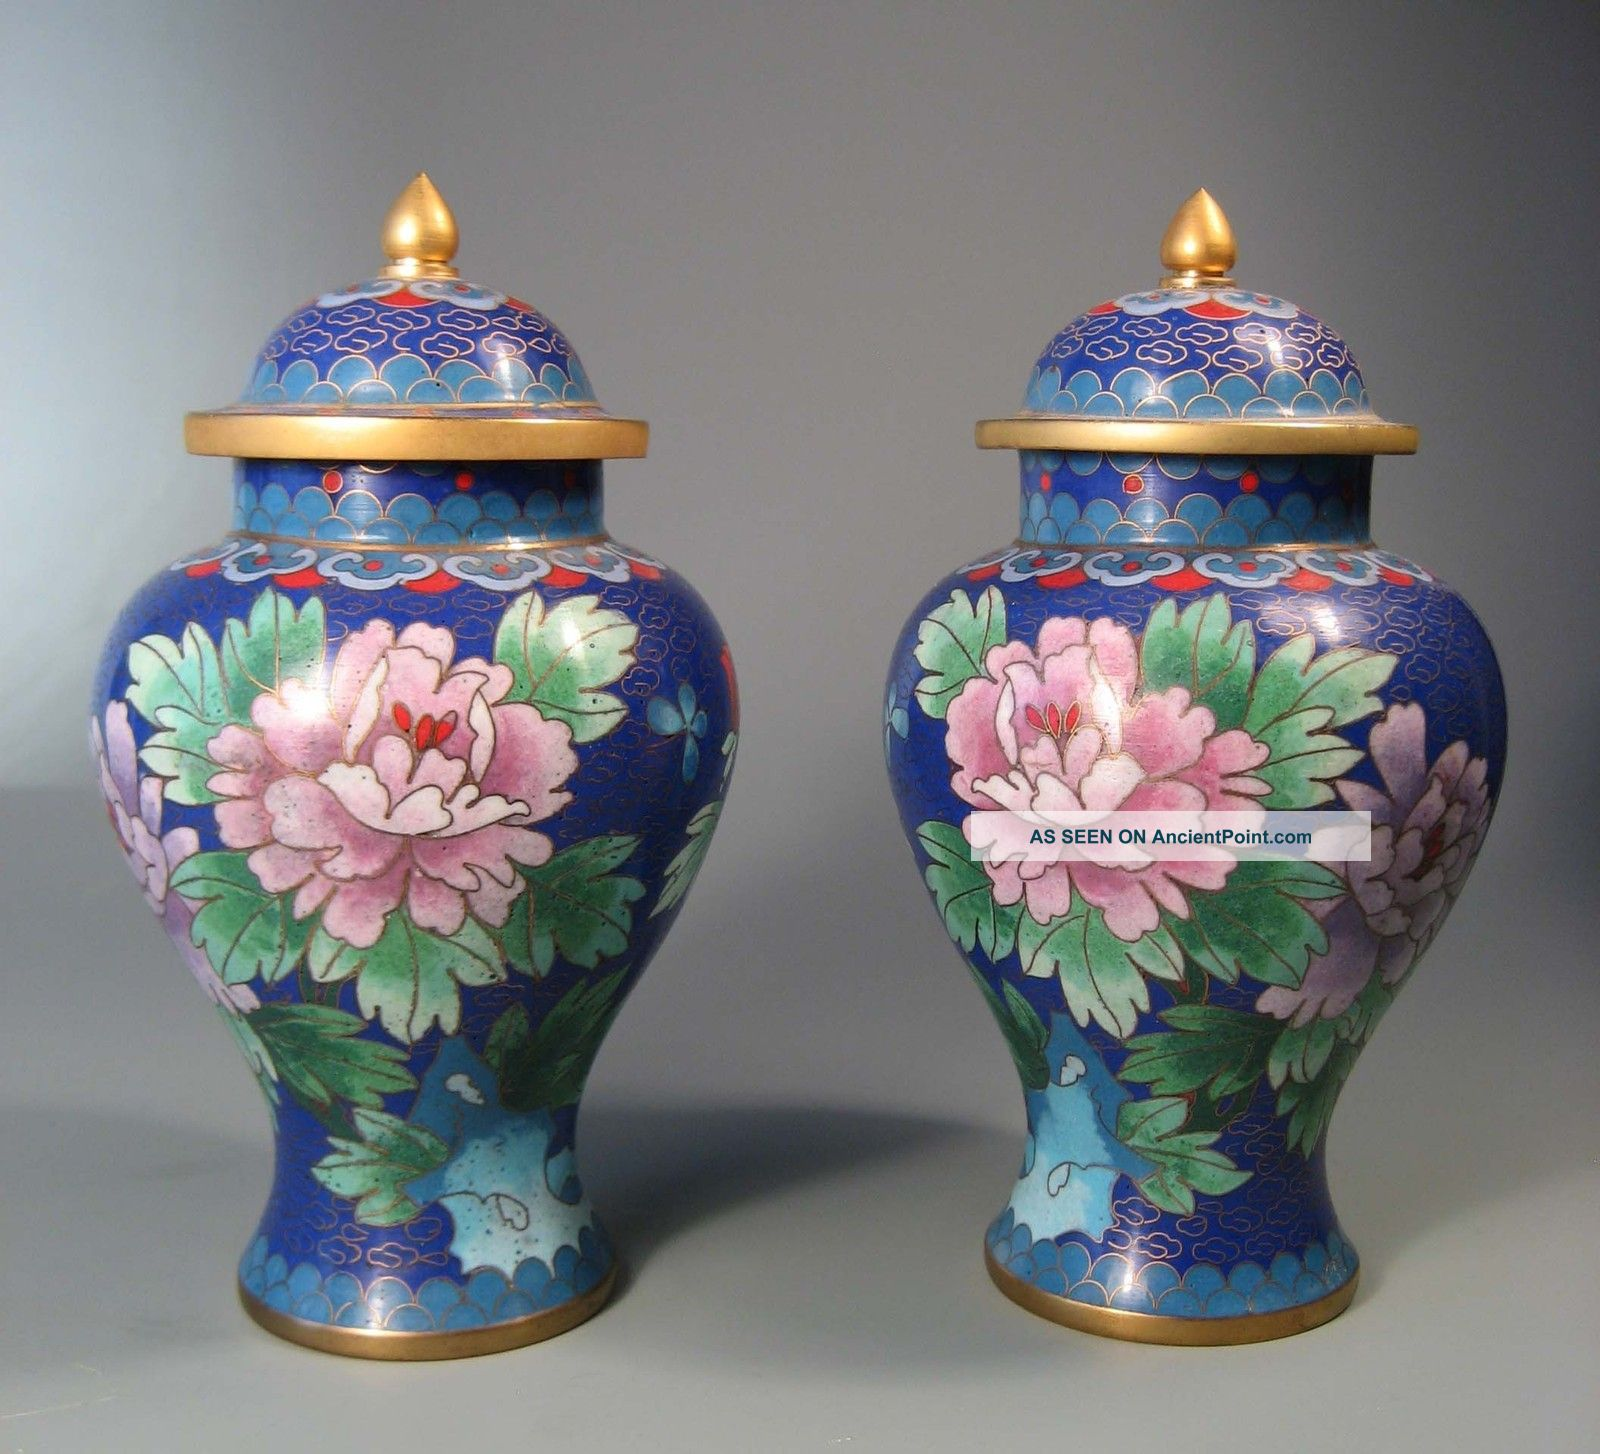 Fine Old Pair China Chinese Cloisonne Vases Chrysanthenum Floral Decor 20th C. Boxes photo